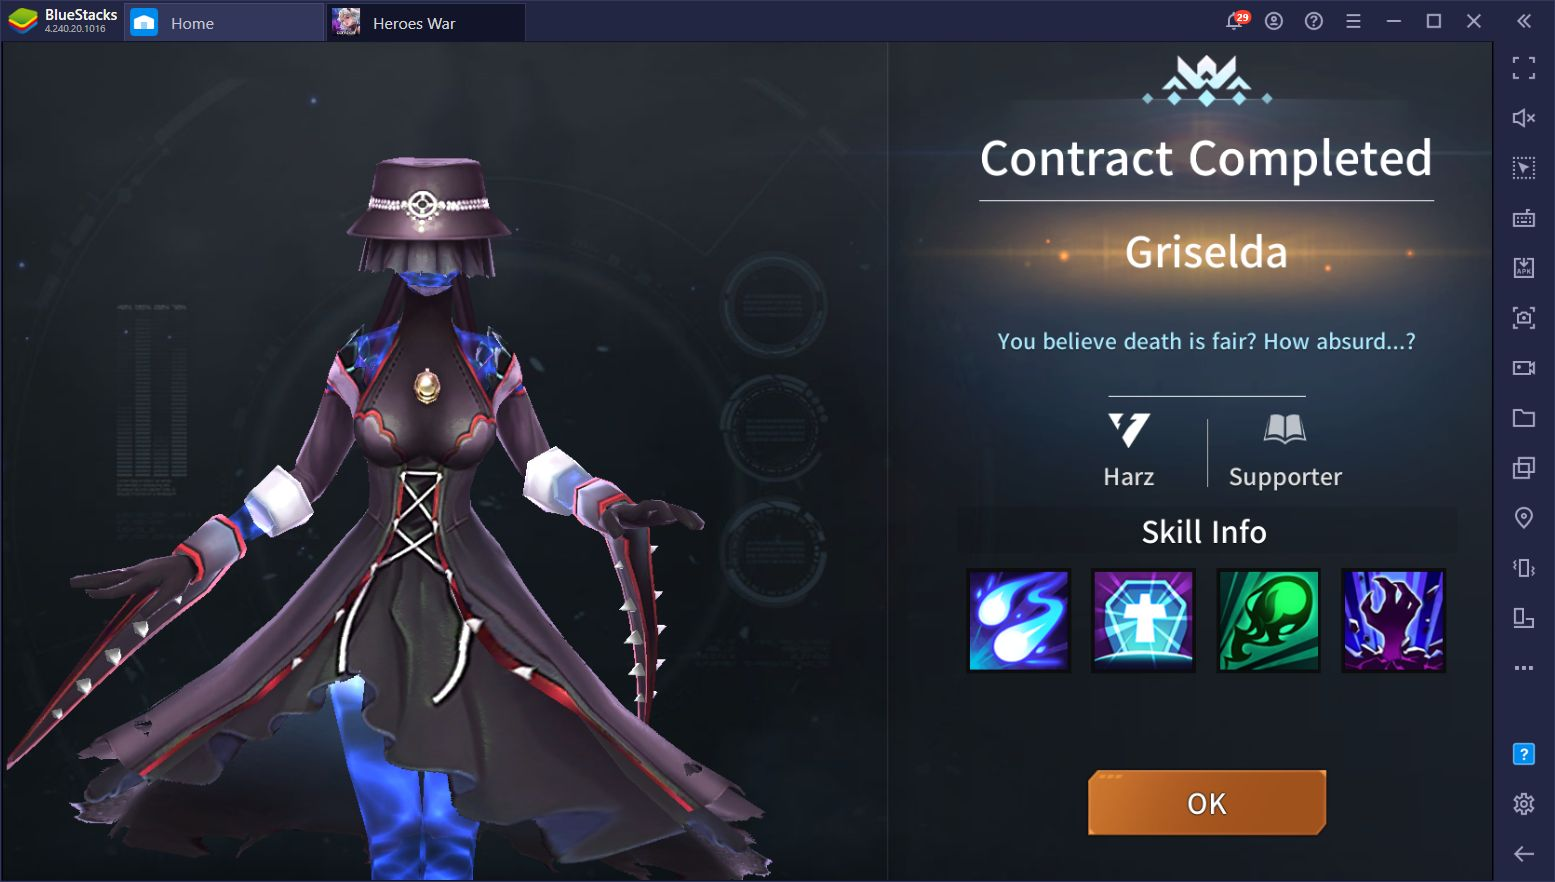 Heroes War: Counterattack on PC – How to Use BlueStacks for Easy Rerolls and Improved Controls